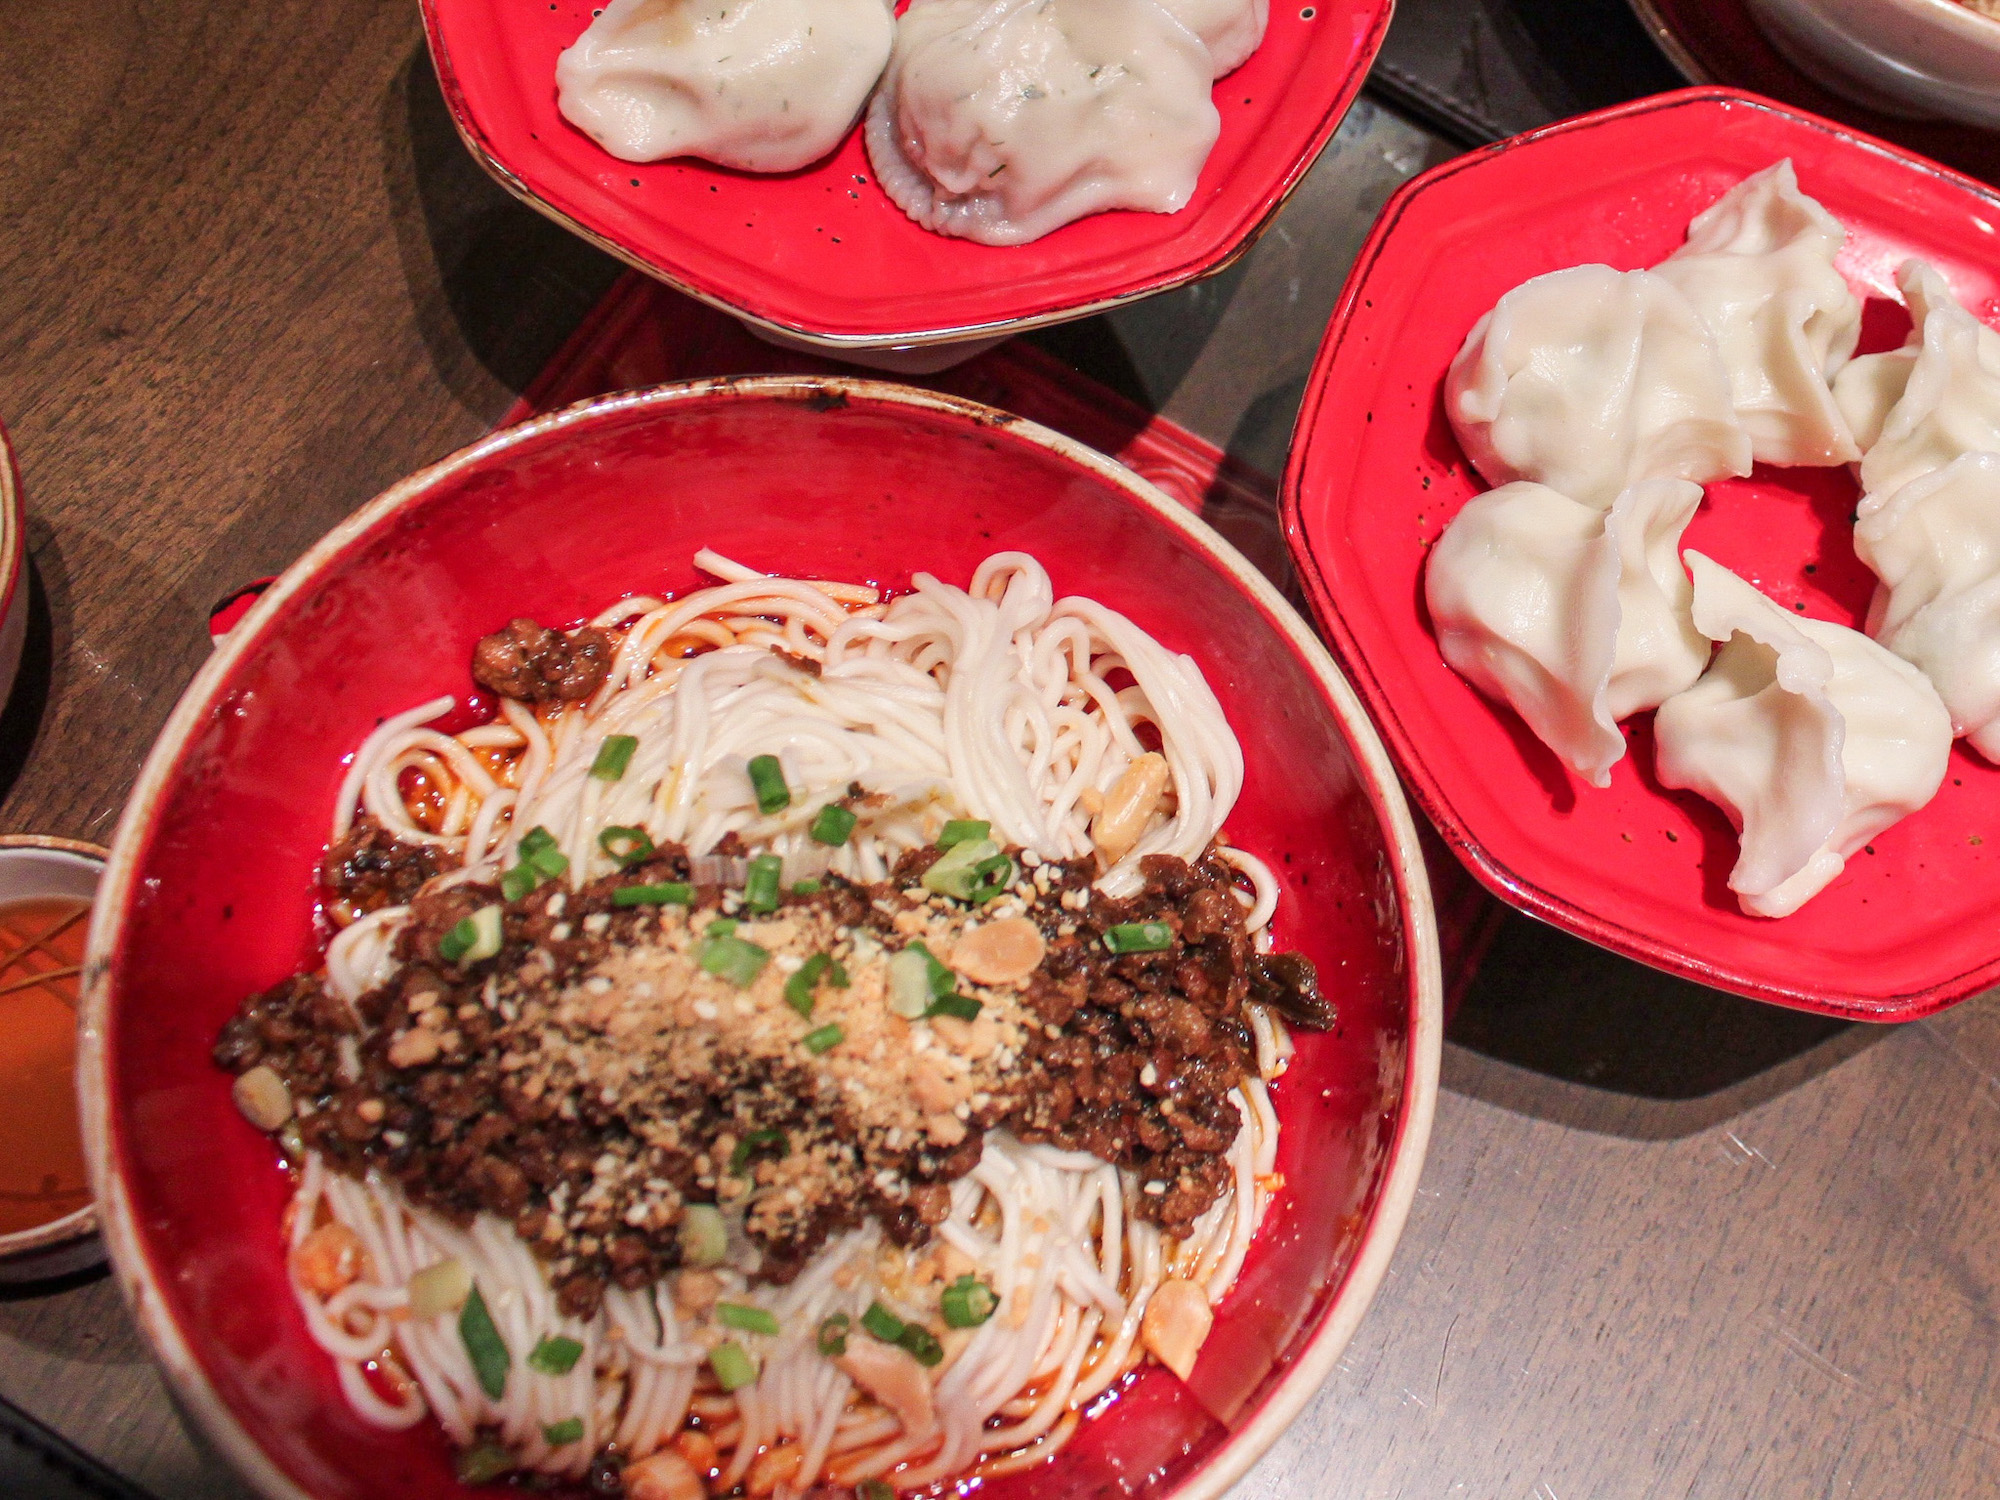 northern noodle house city of dreams chinese noodles macau lifestyle